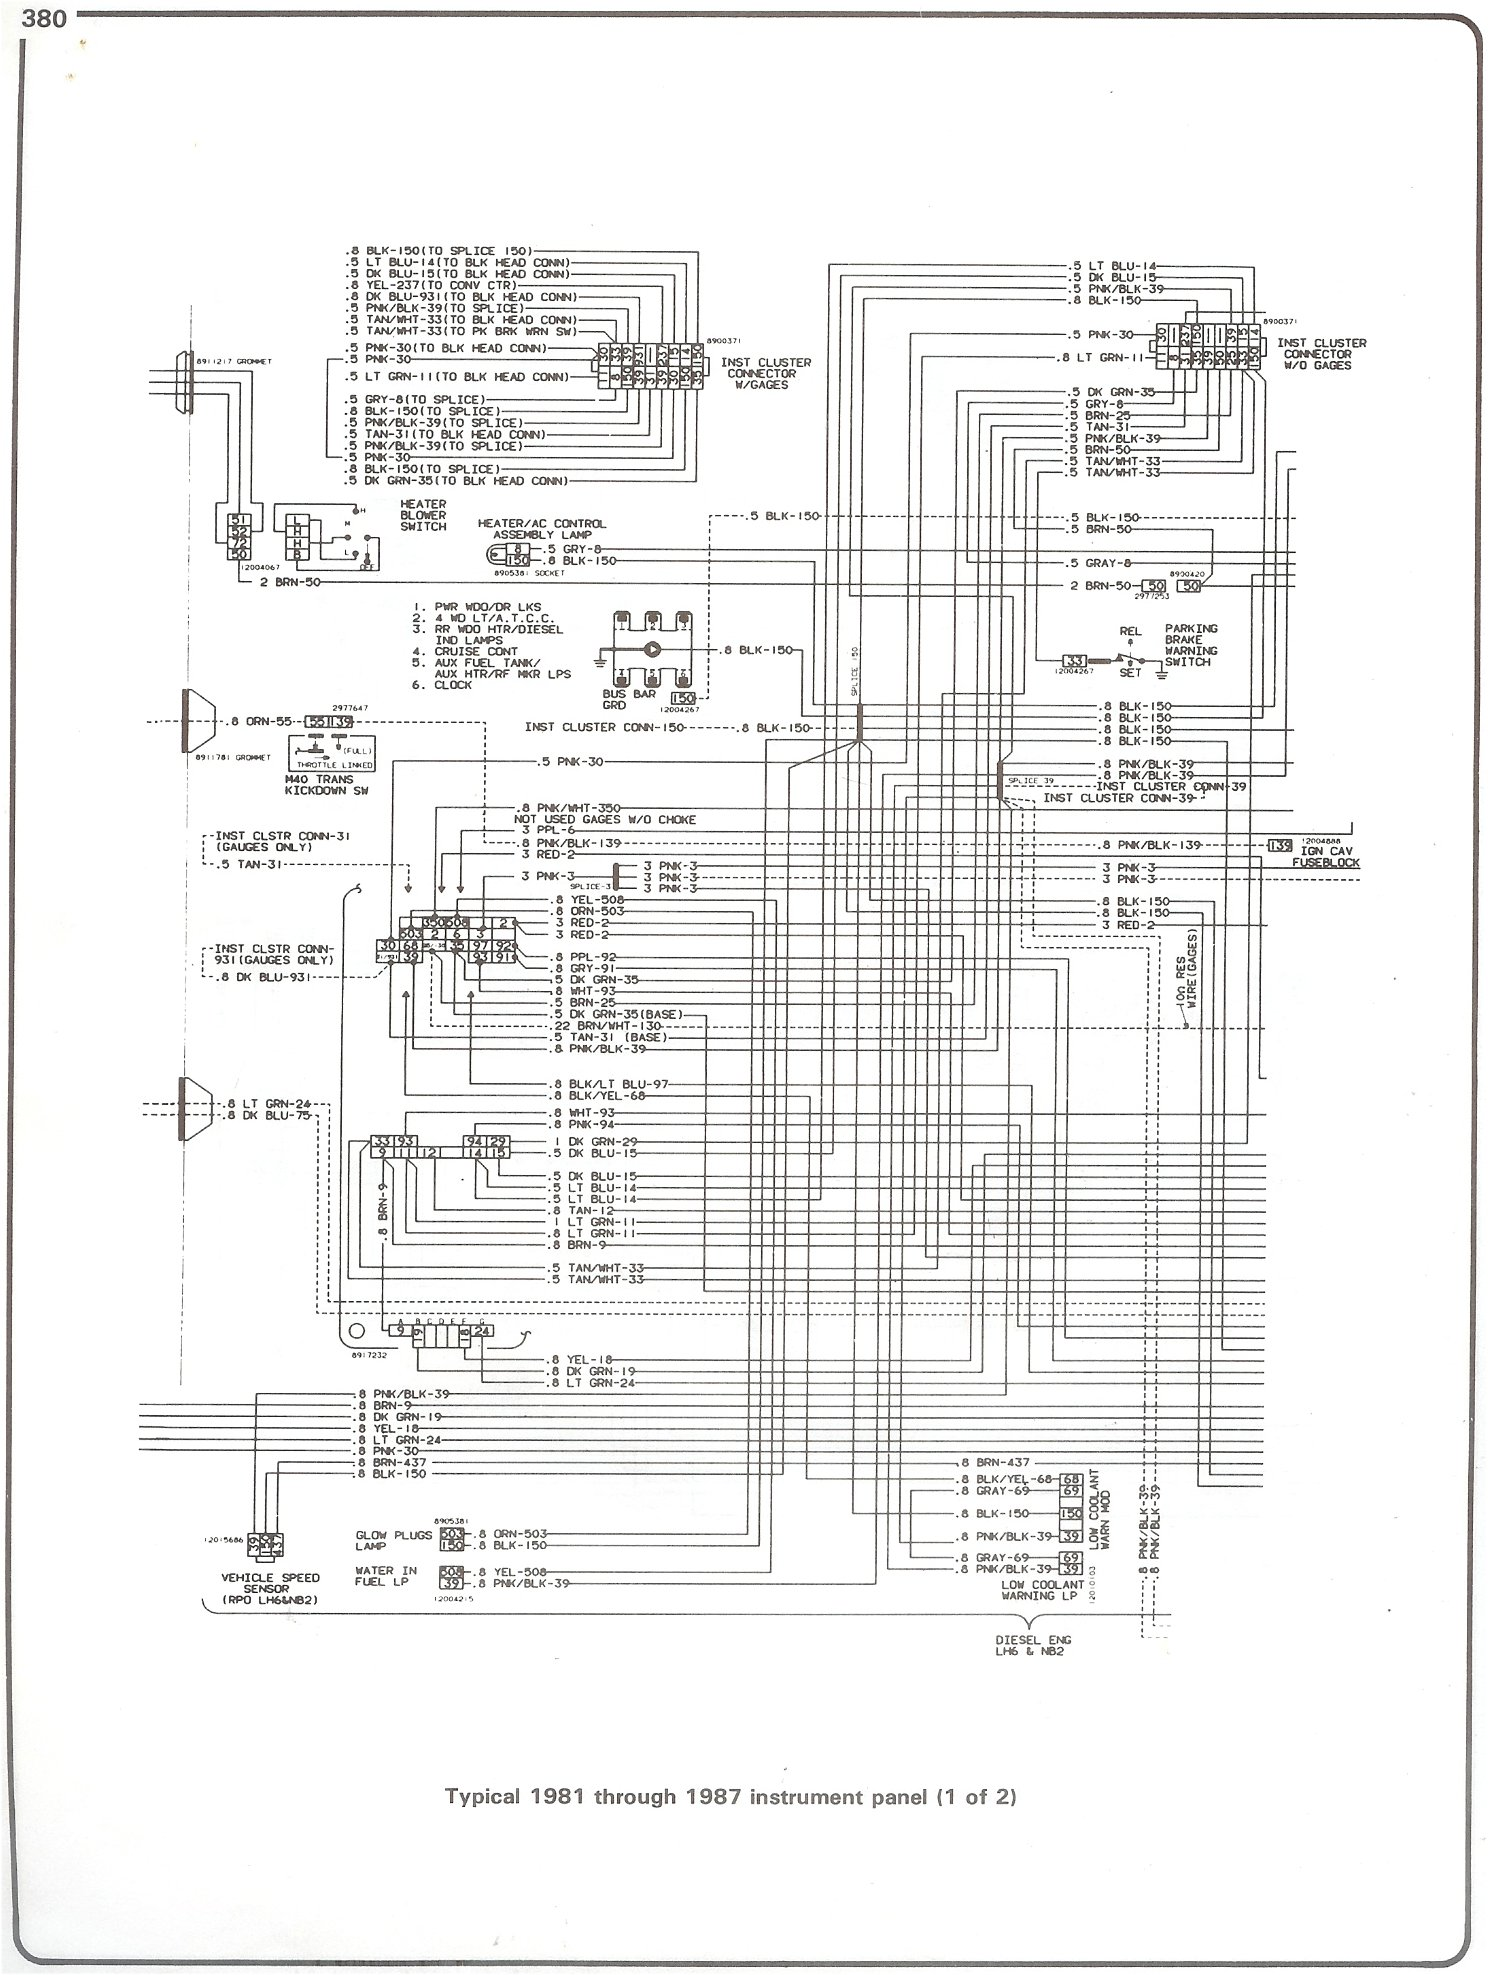 Chevy Truck Under Hood Wiring Diagram - Schema Wiring Diagram on universal engine wiring diagram, flhx turn signal wire diagram, simple turn signal diagram, universal turn signals for cars, universal wiring diagram everlasting, circuit diagram, 58 t-bird turn signal switch diagram, mustang sequential flasher diagram, universal wiper motor wiring diagram, 90 town car turn signal diagram, street rod turn signal diagram, 7-wire turn signal diagram, attitude indicator diagram, chevy turn signal diagram, empi universal turn signal switch diagram,